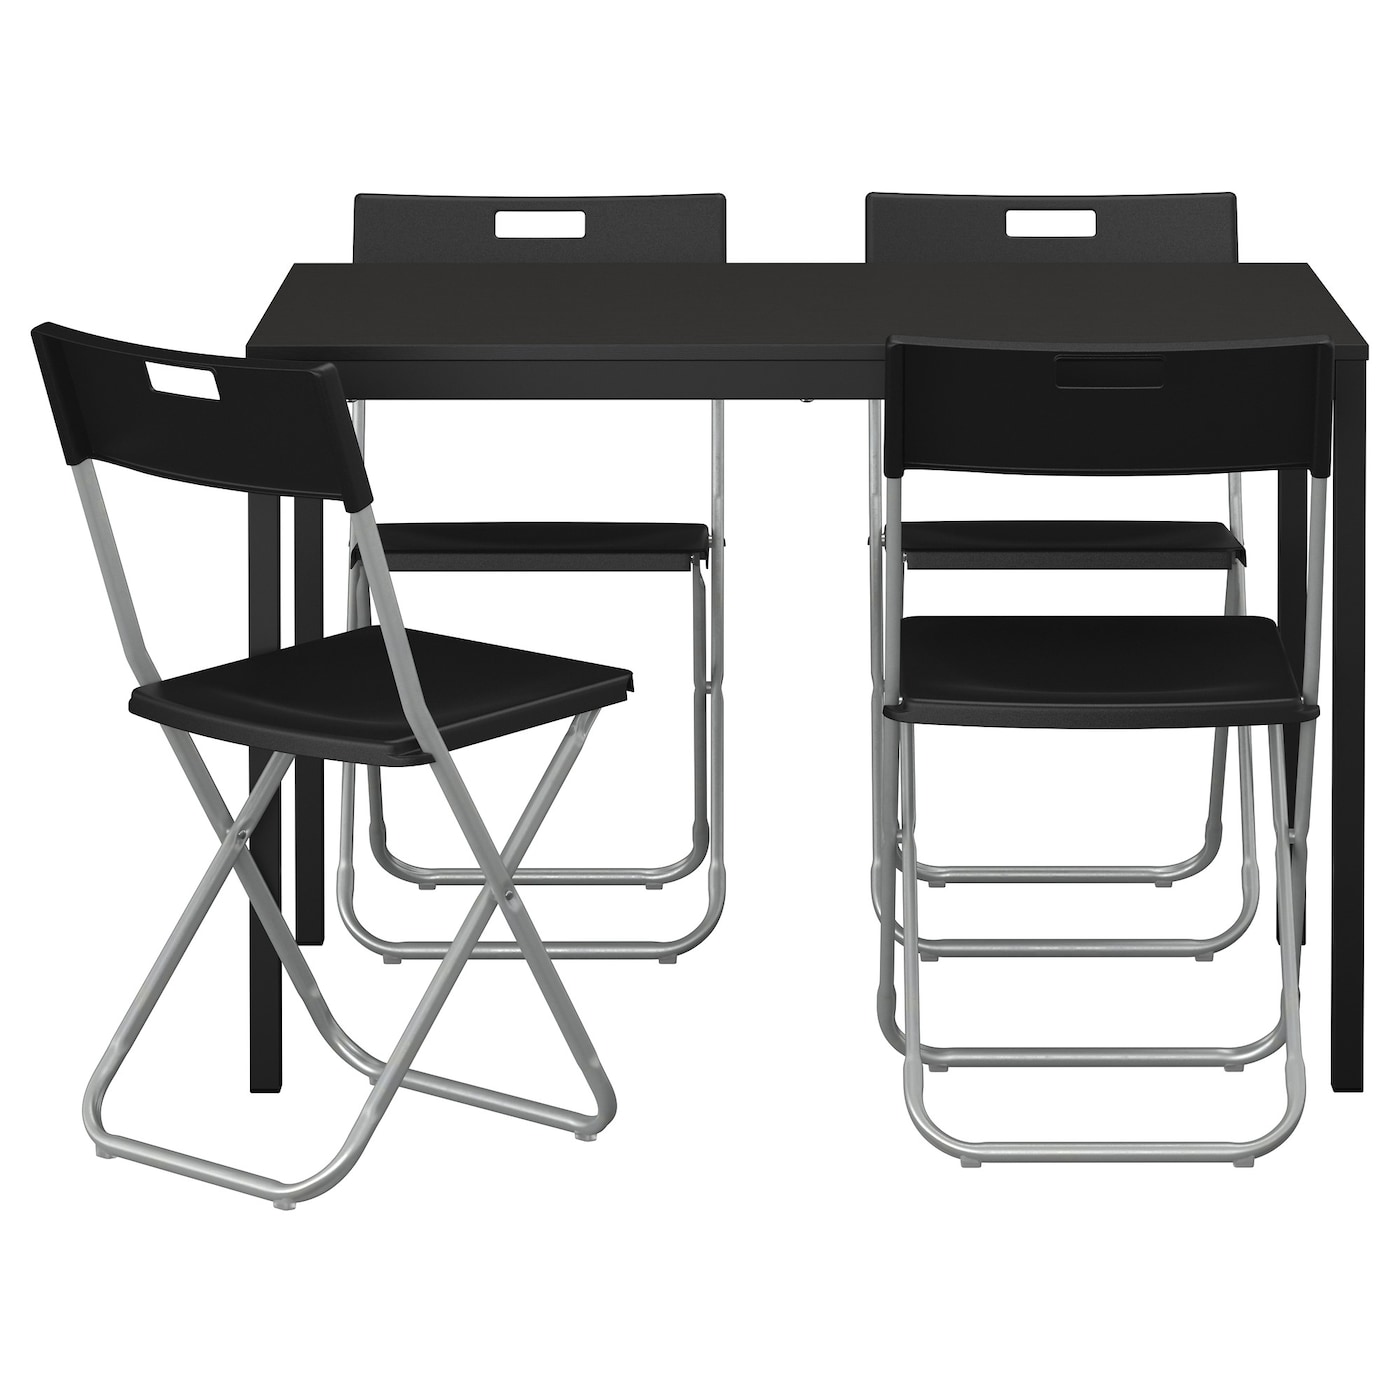 IKEA GUNDE/TÄRENDÖ table and 4 chairs Locks in the open position to prevent unintended folding.